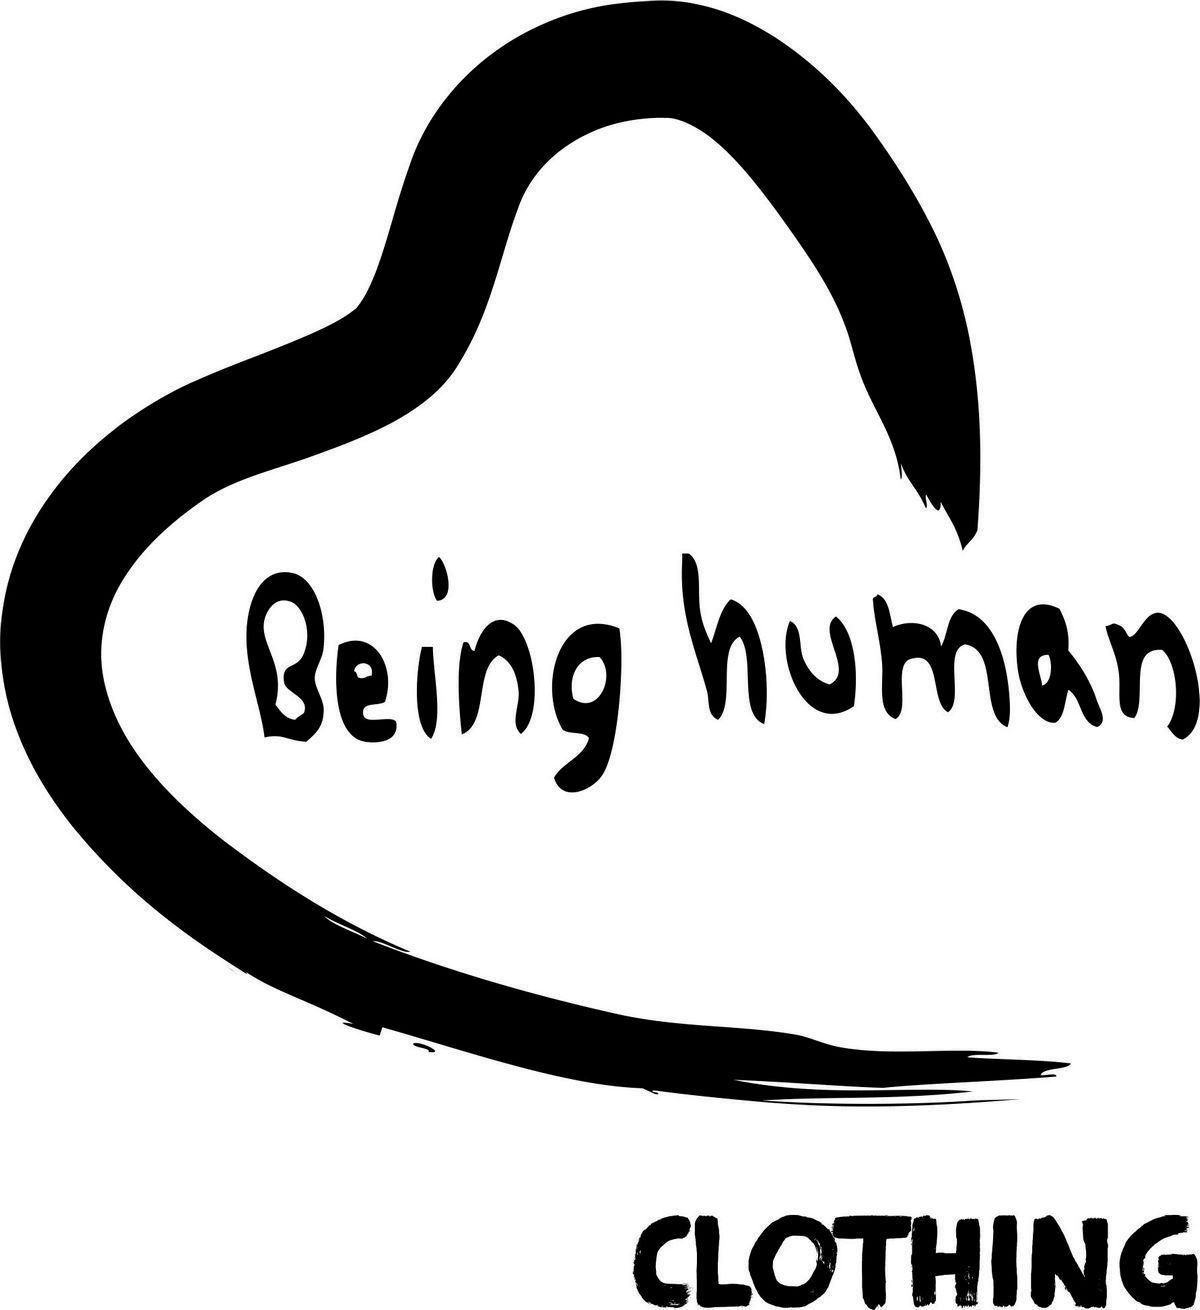 Marketing Mix of Being Human – Being Human Marketing Mix